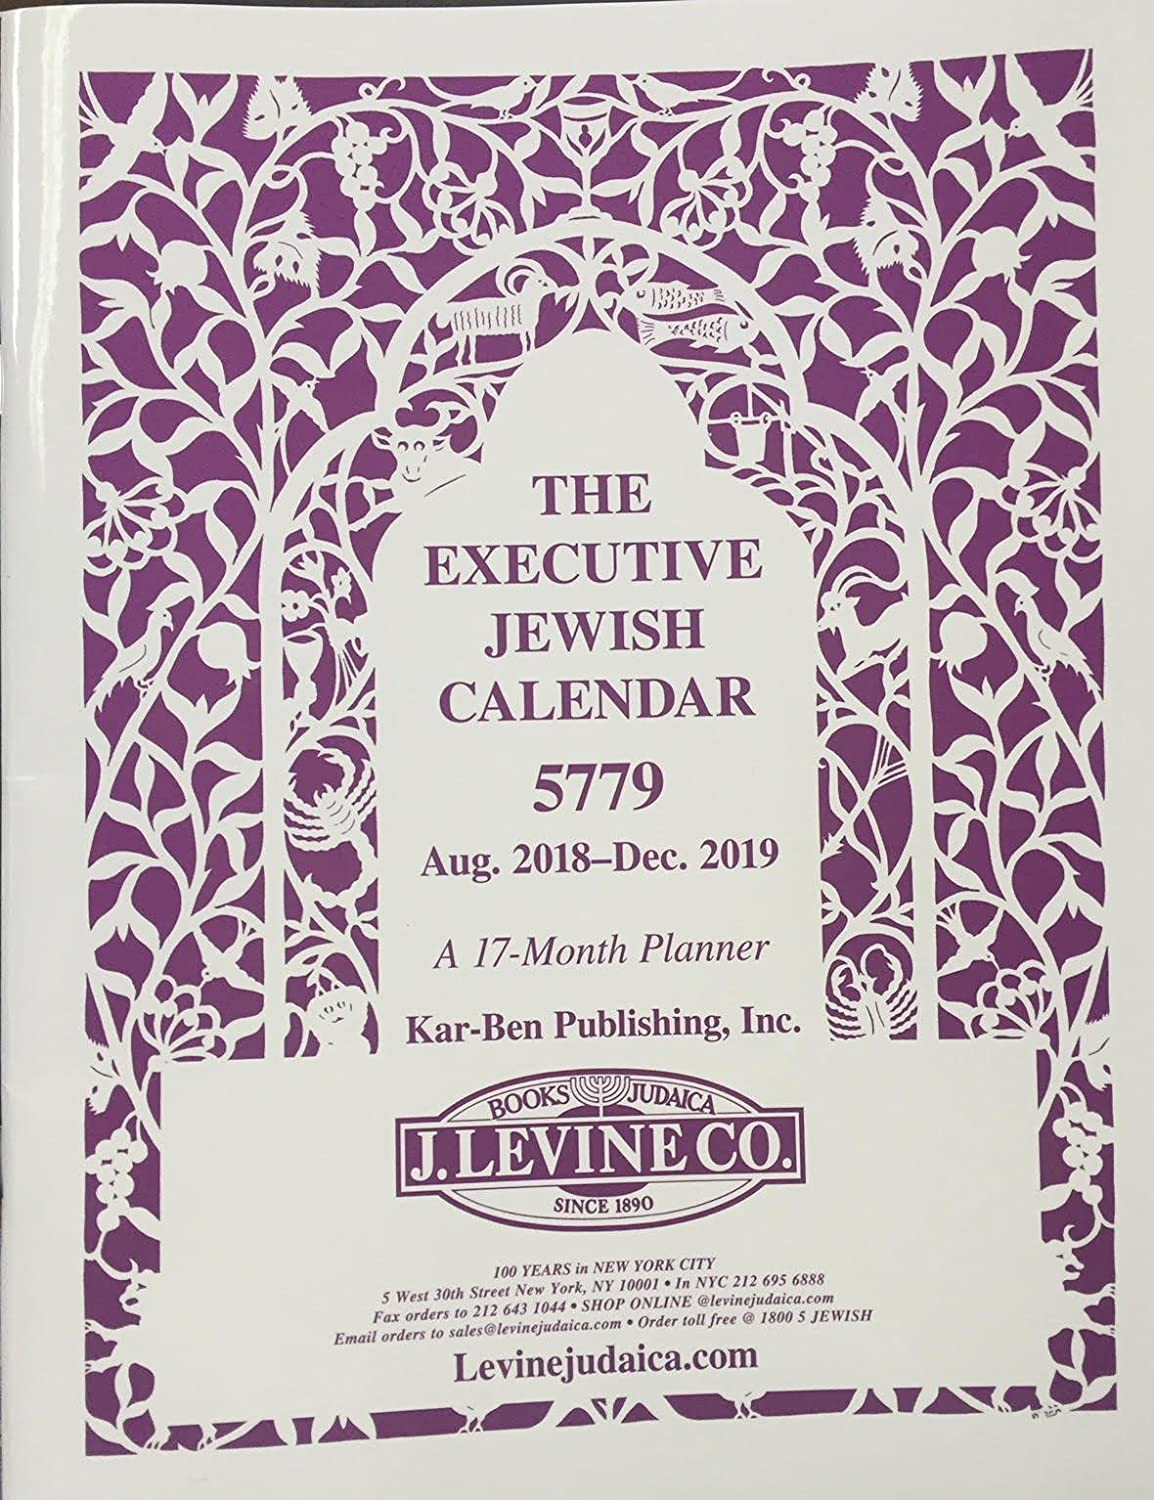 Nyc December 2019 Calendar Amazon.: The Executive J Levine Jewish Calendar 5779 August